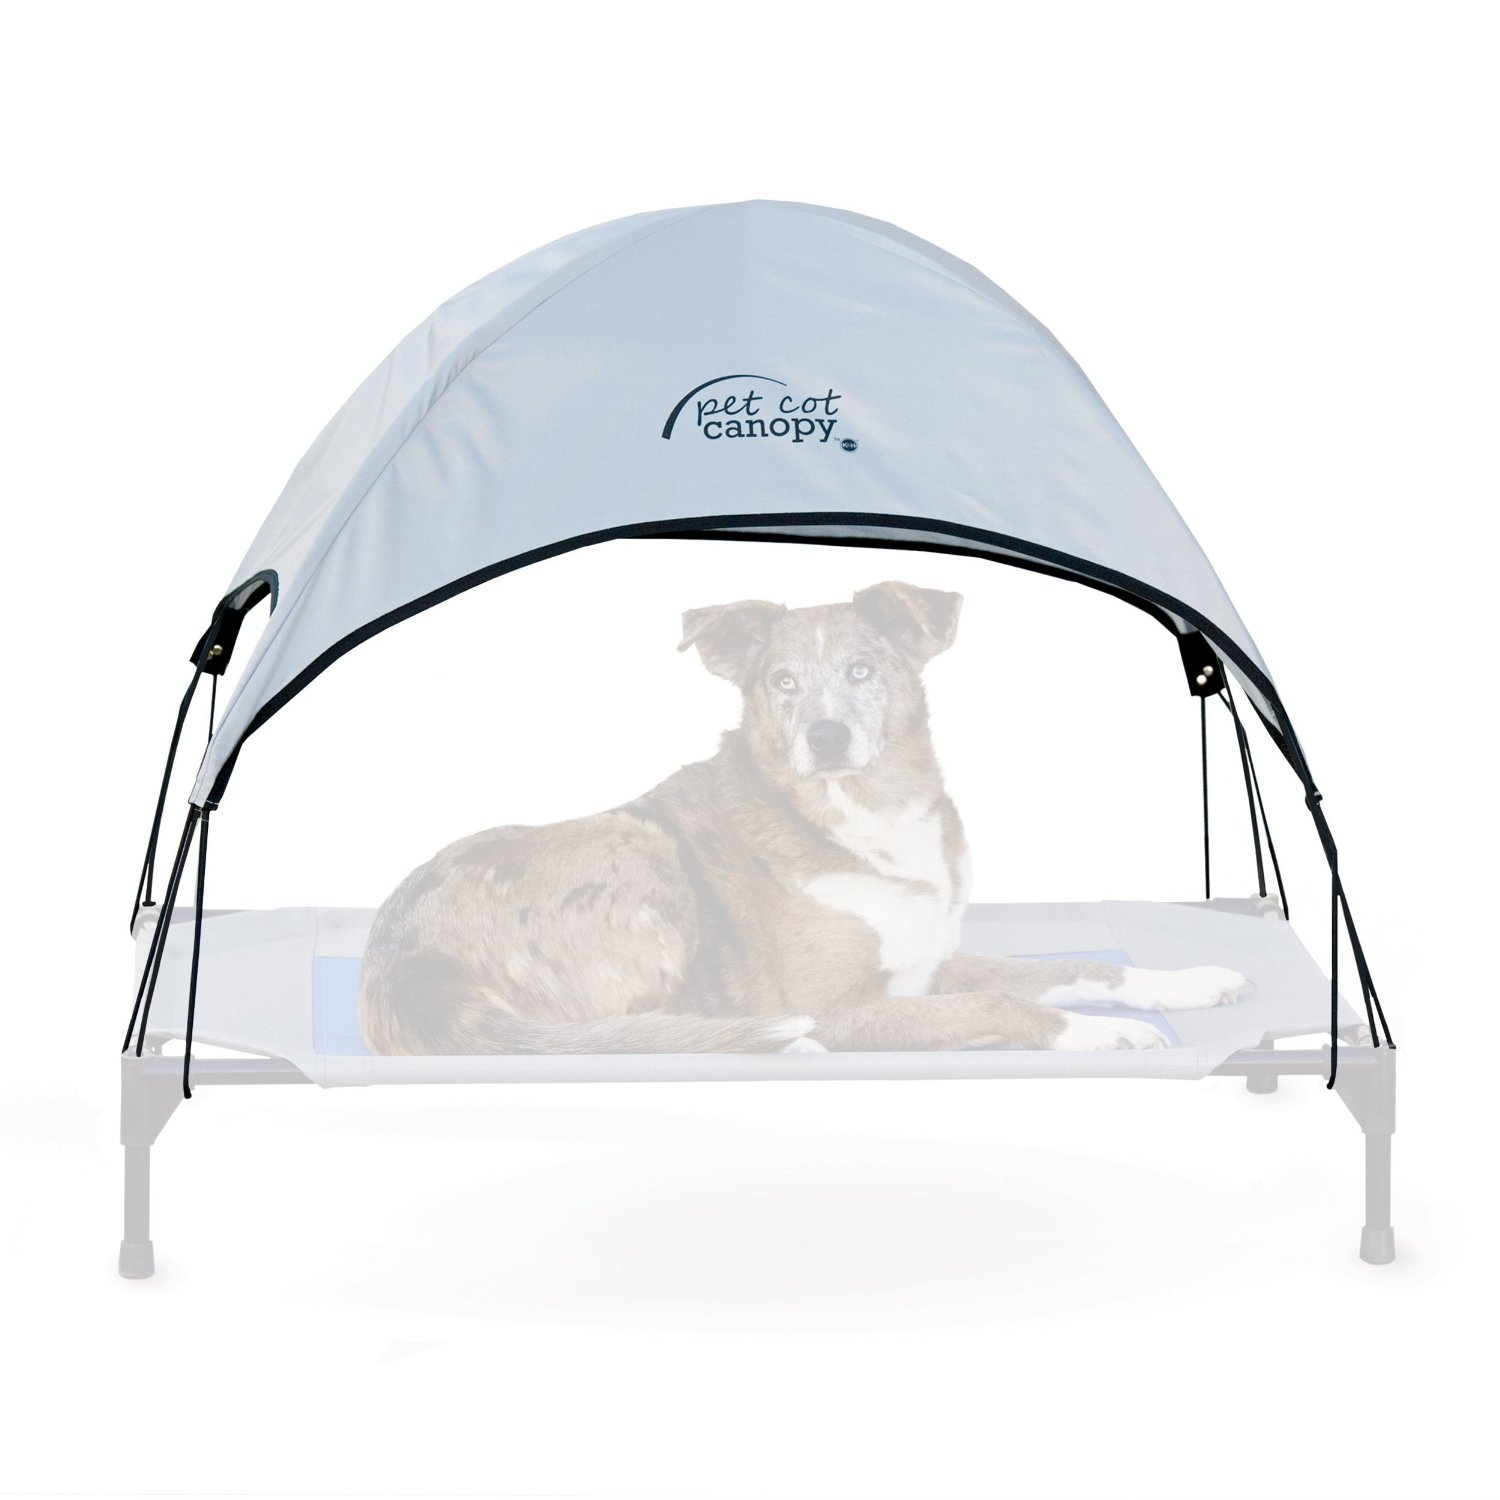 Covered Dog Shade, Portable | 13 Ways to Keep a Dog Cool this Summer (www.danslelakehouse.com)